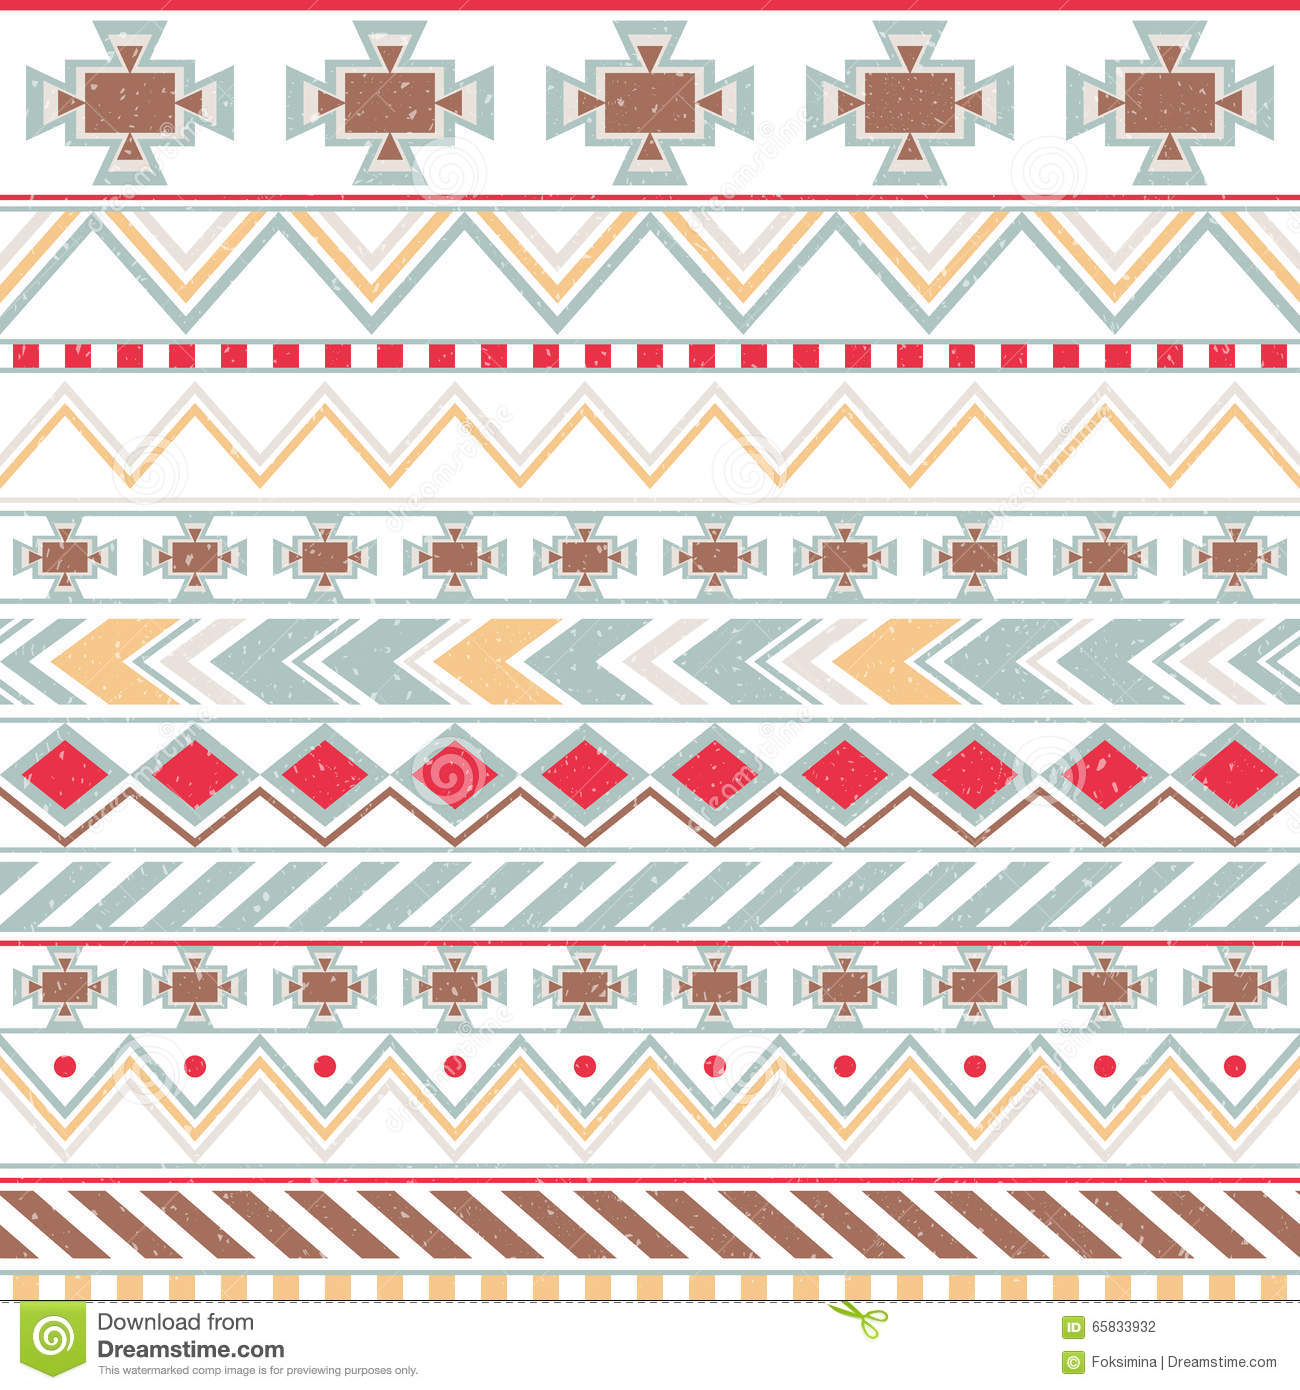 Blue Tribal Wallpapers: Aztec Colorful Ethnic Seamless Pattern, Tribal Light